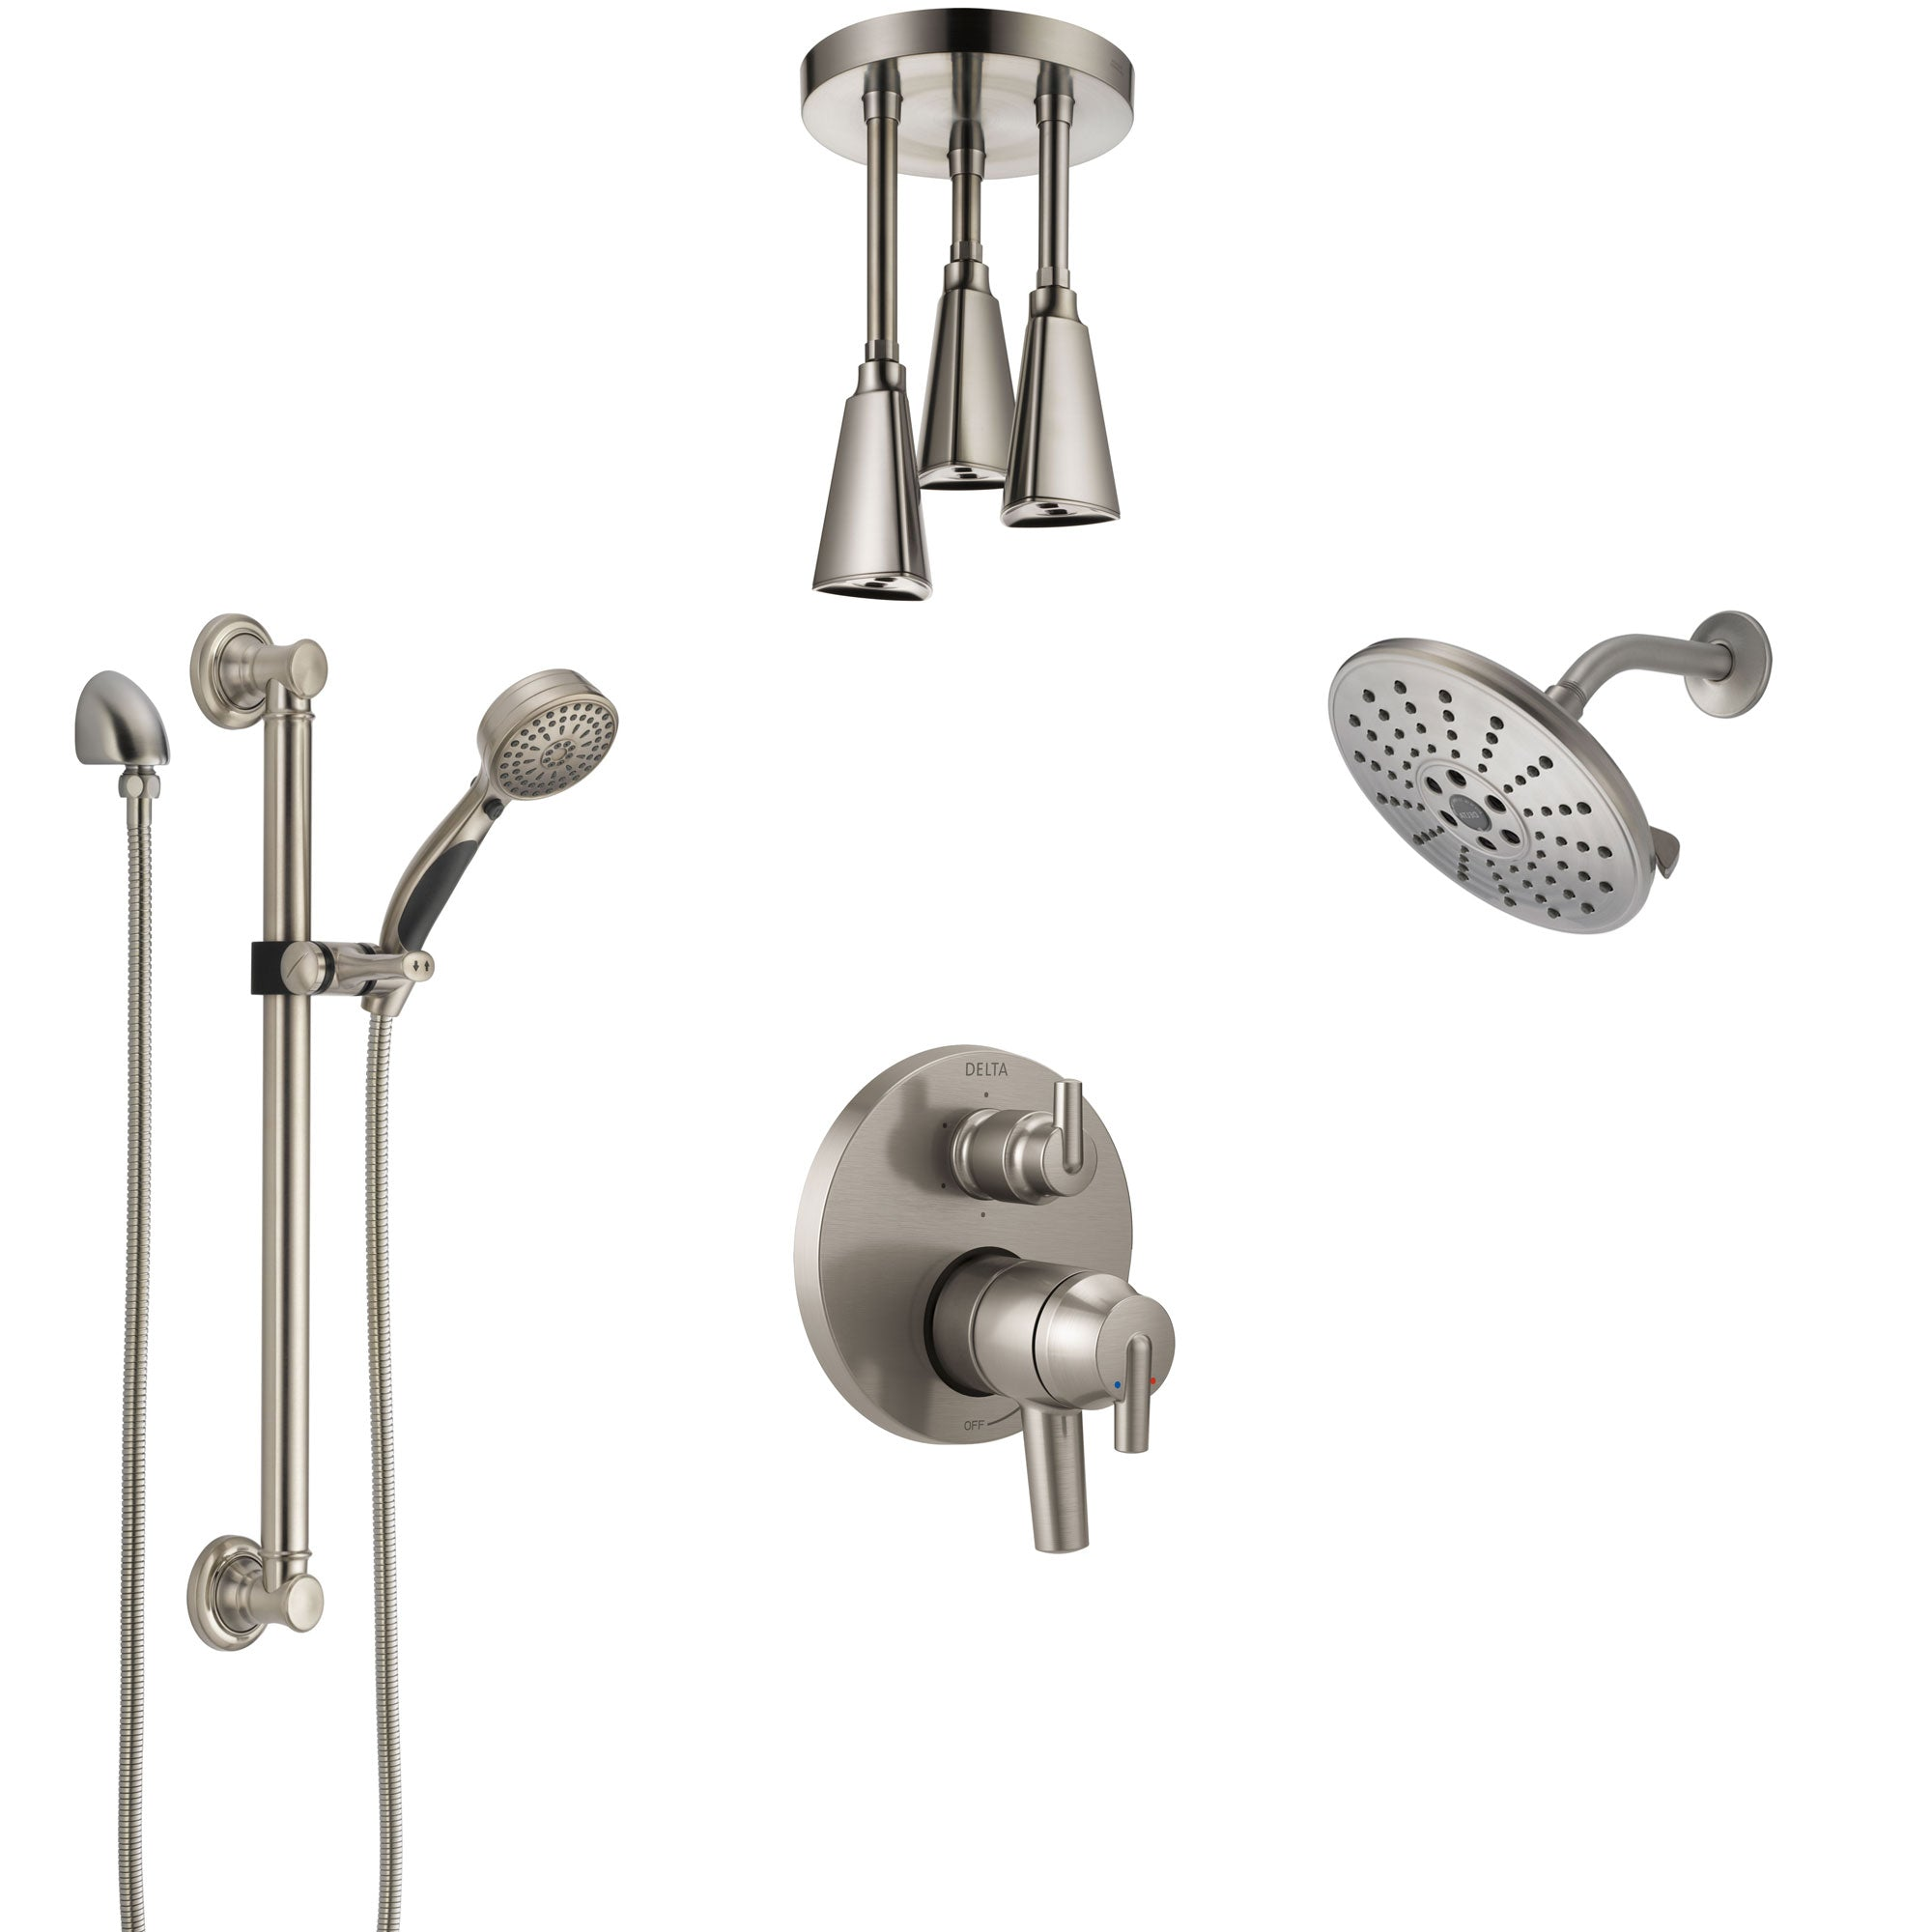 Delta Trinsic Dual Control Handle Stainless Steel Finish Shower System, Showerhead, Ceiling Showerhead, Grab Bar Hand Spray SS27959SS2